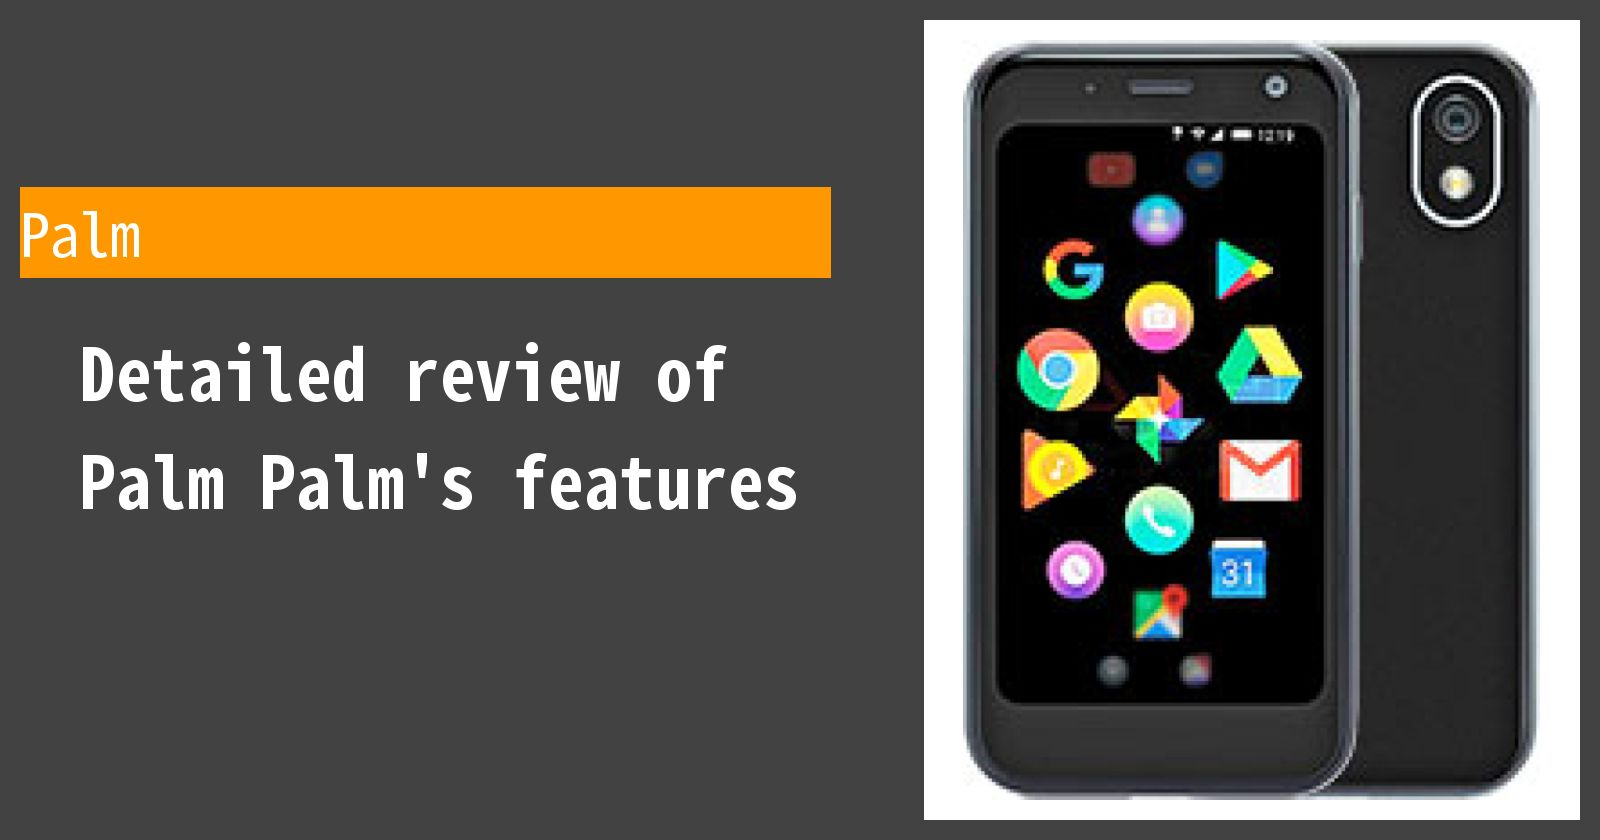 Detailed review of Palm Palm's features